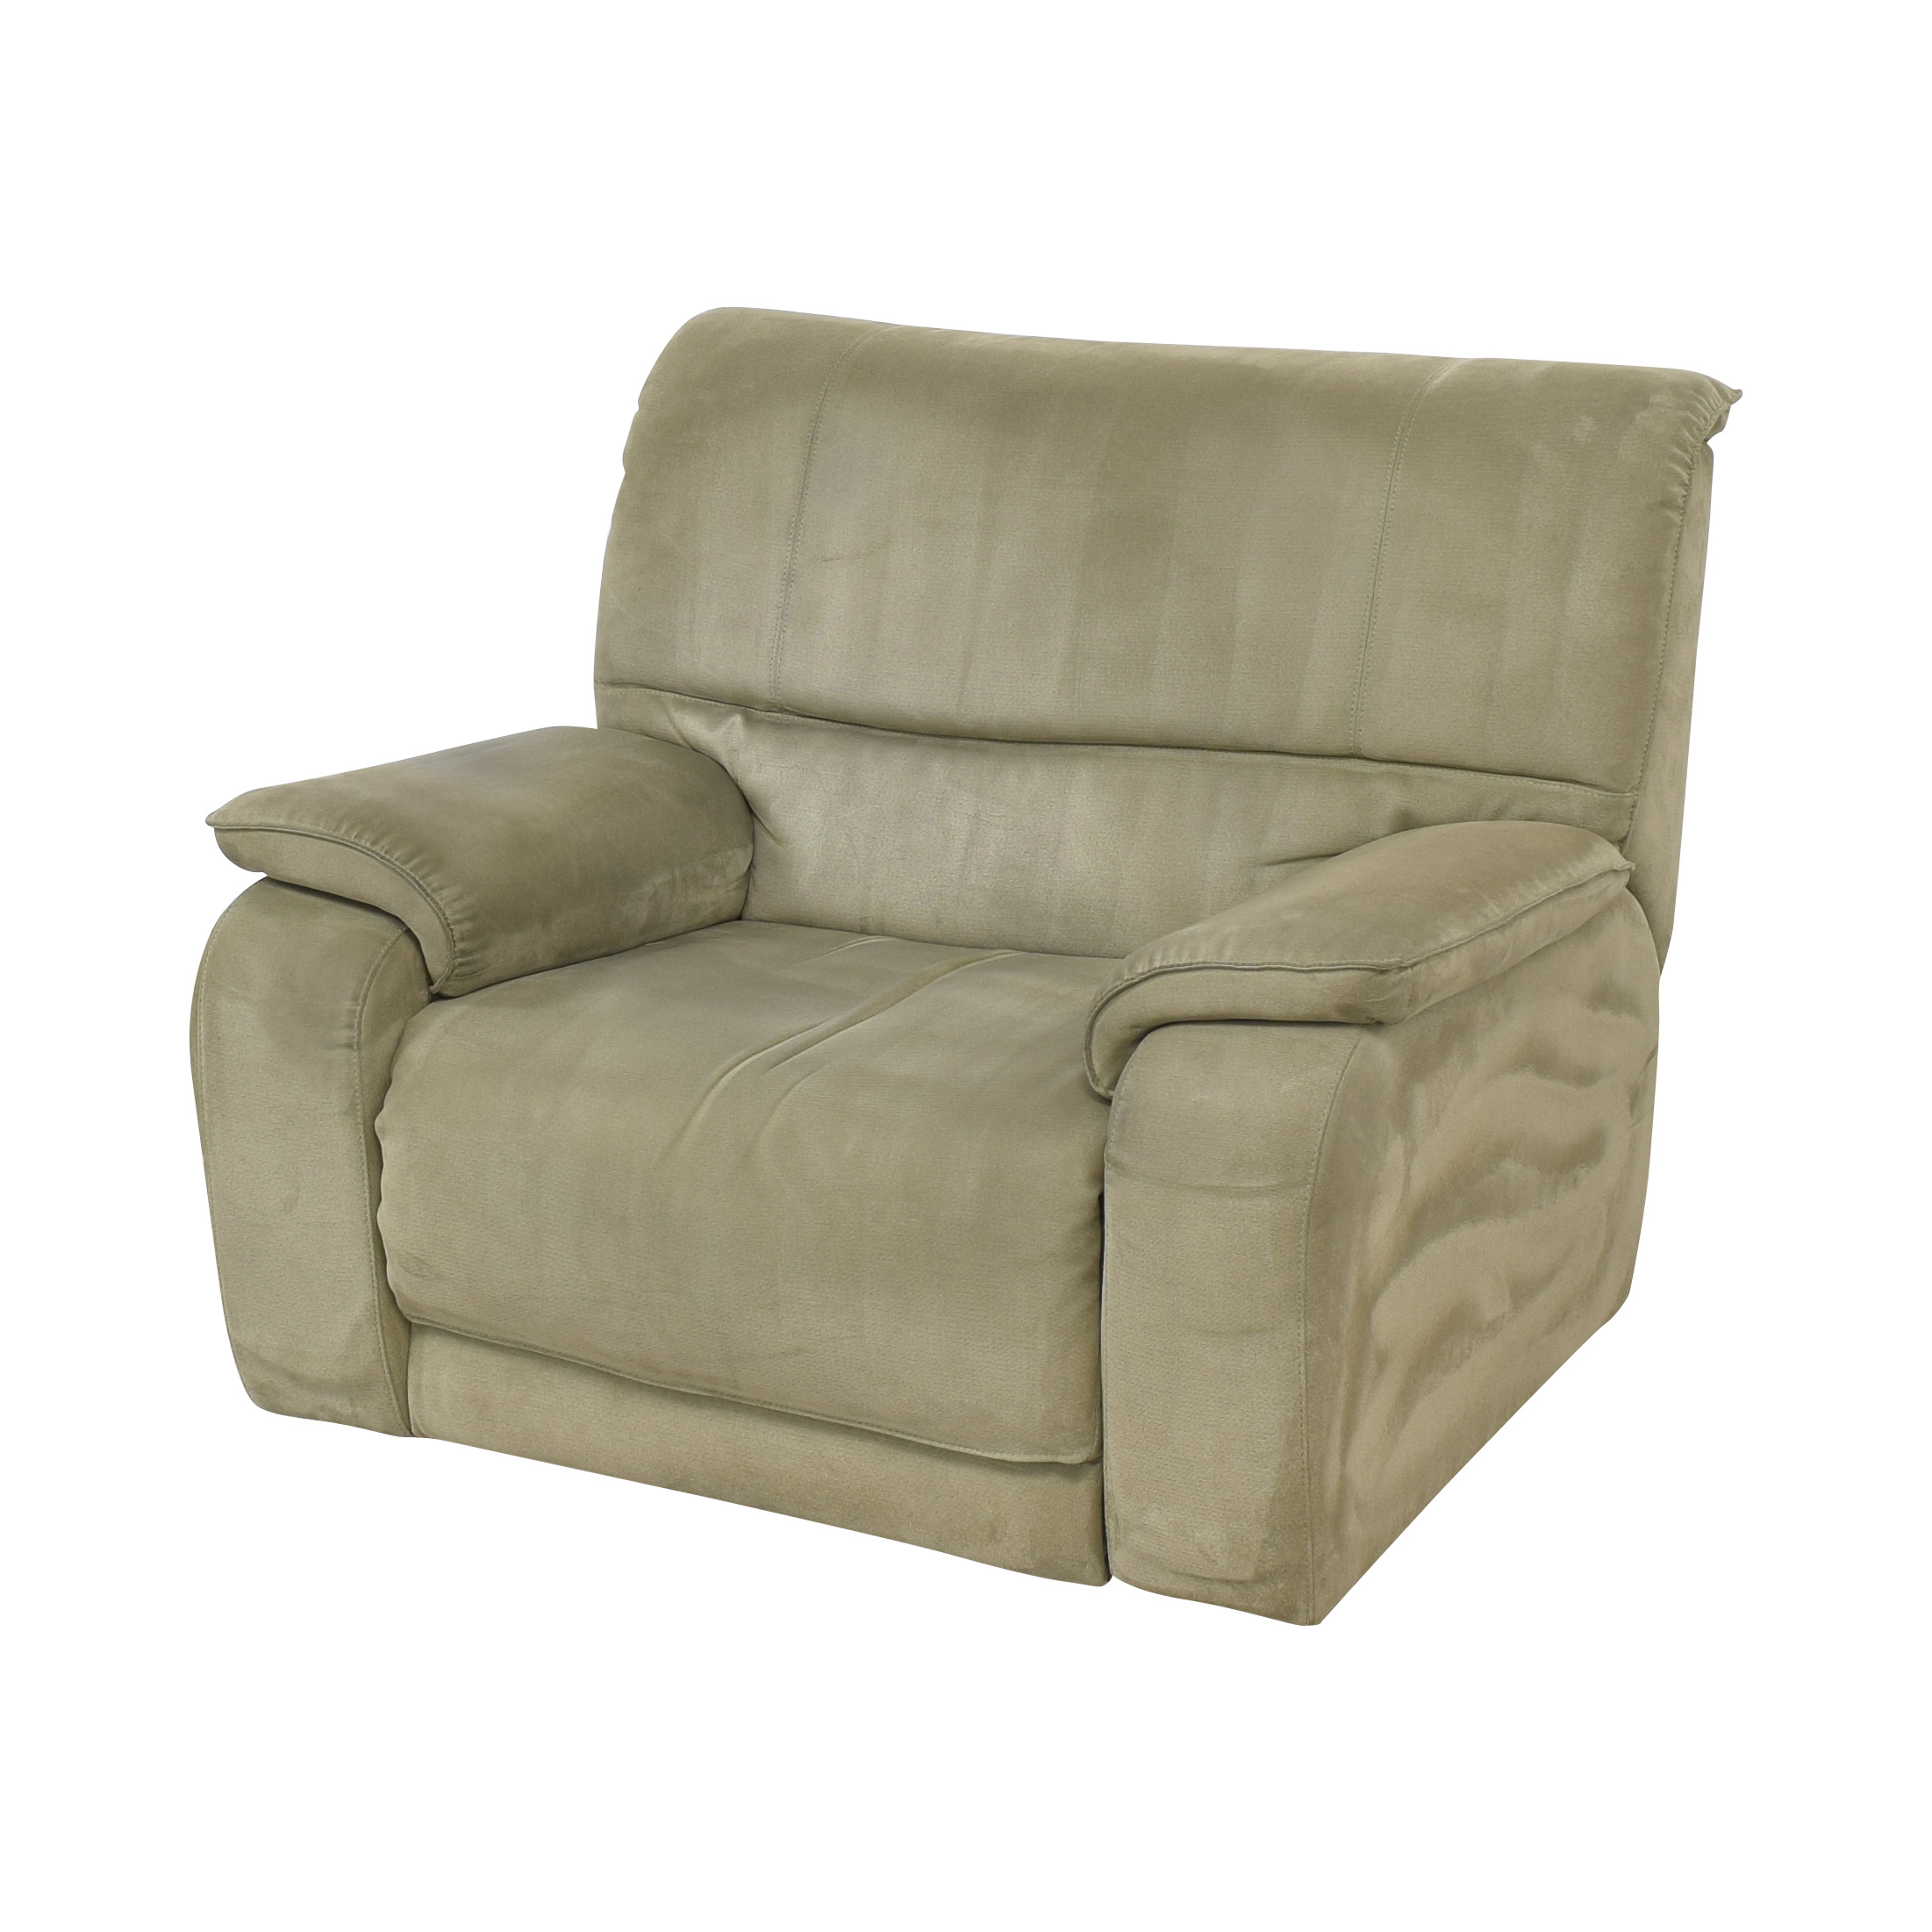 Macy's Macy's Oversized Recliner grey